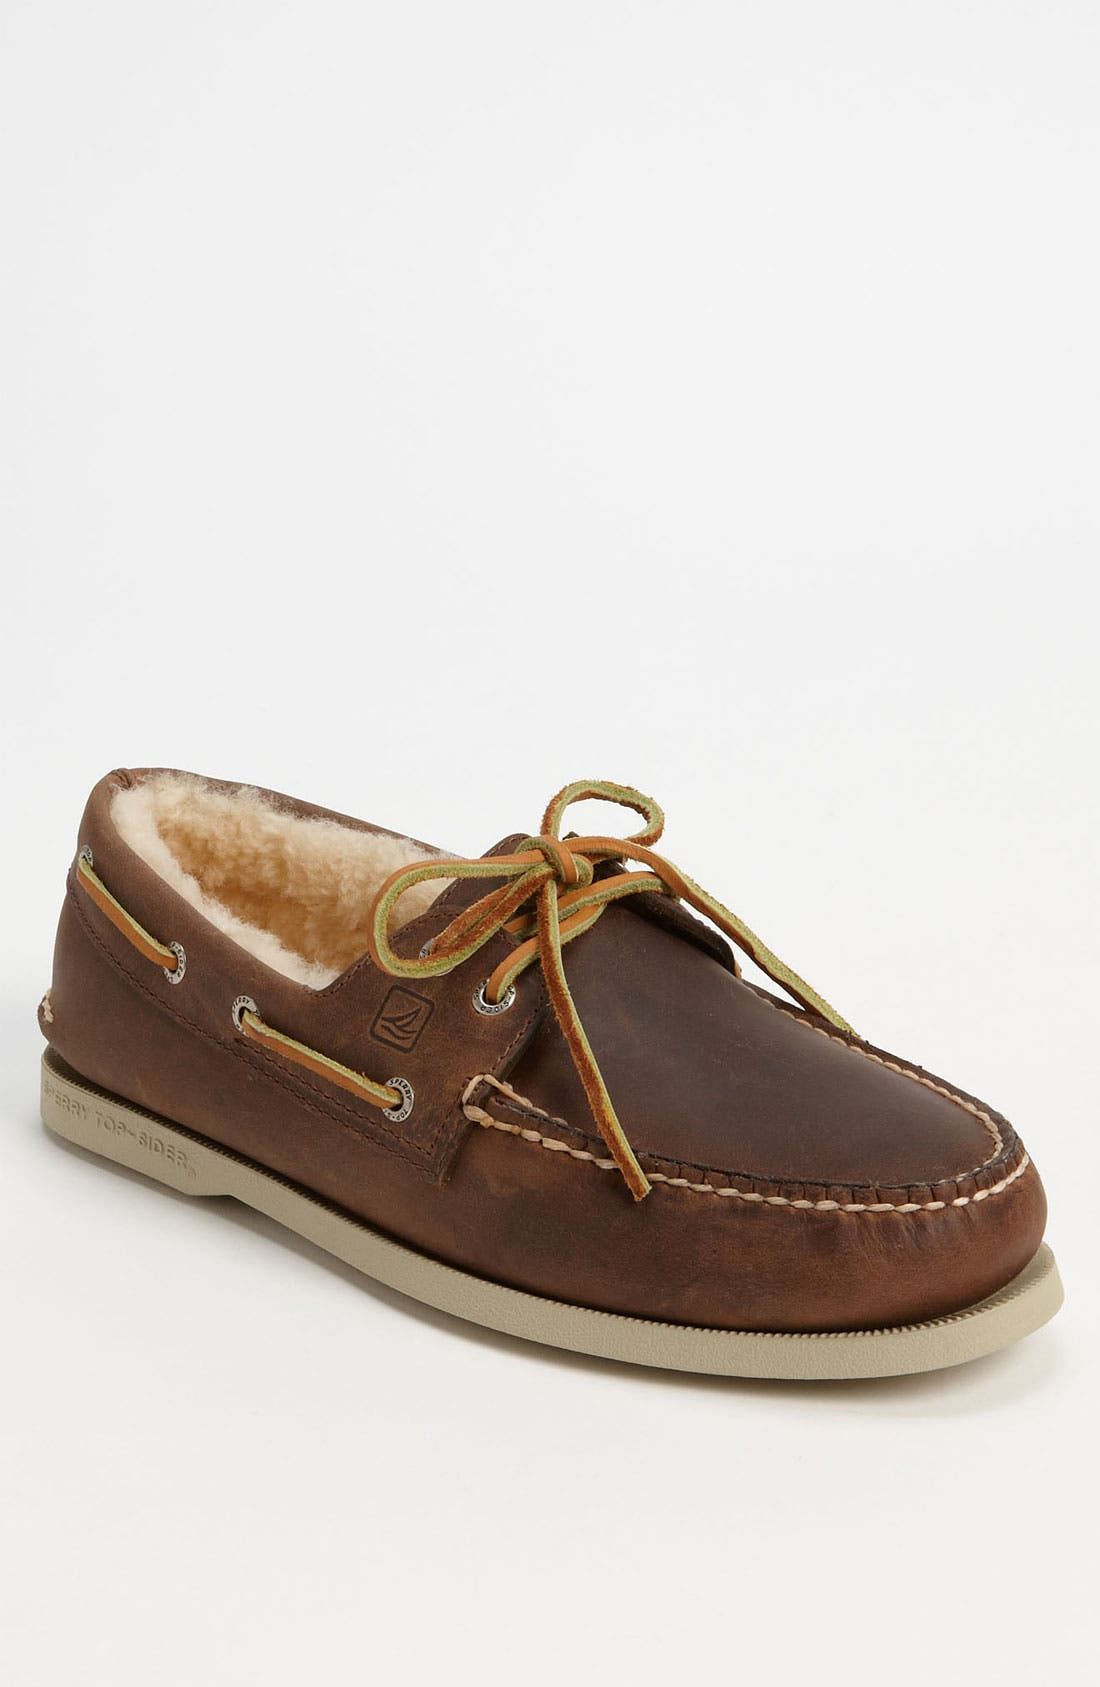 Main Image - Sperry Top-Sider™ 'Authentic Original - Winter' Boat Shoe